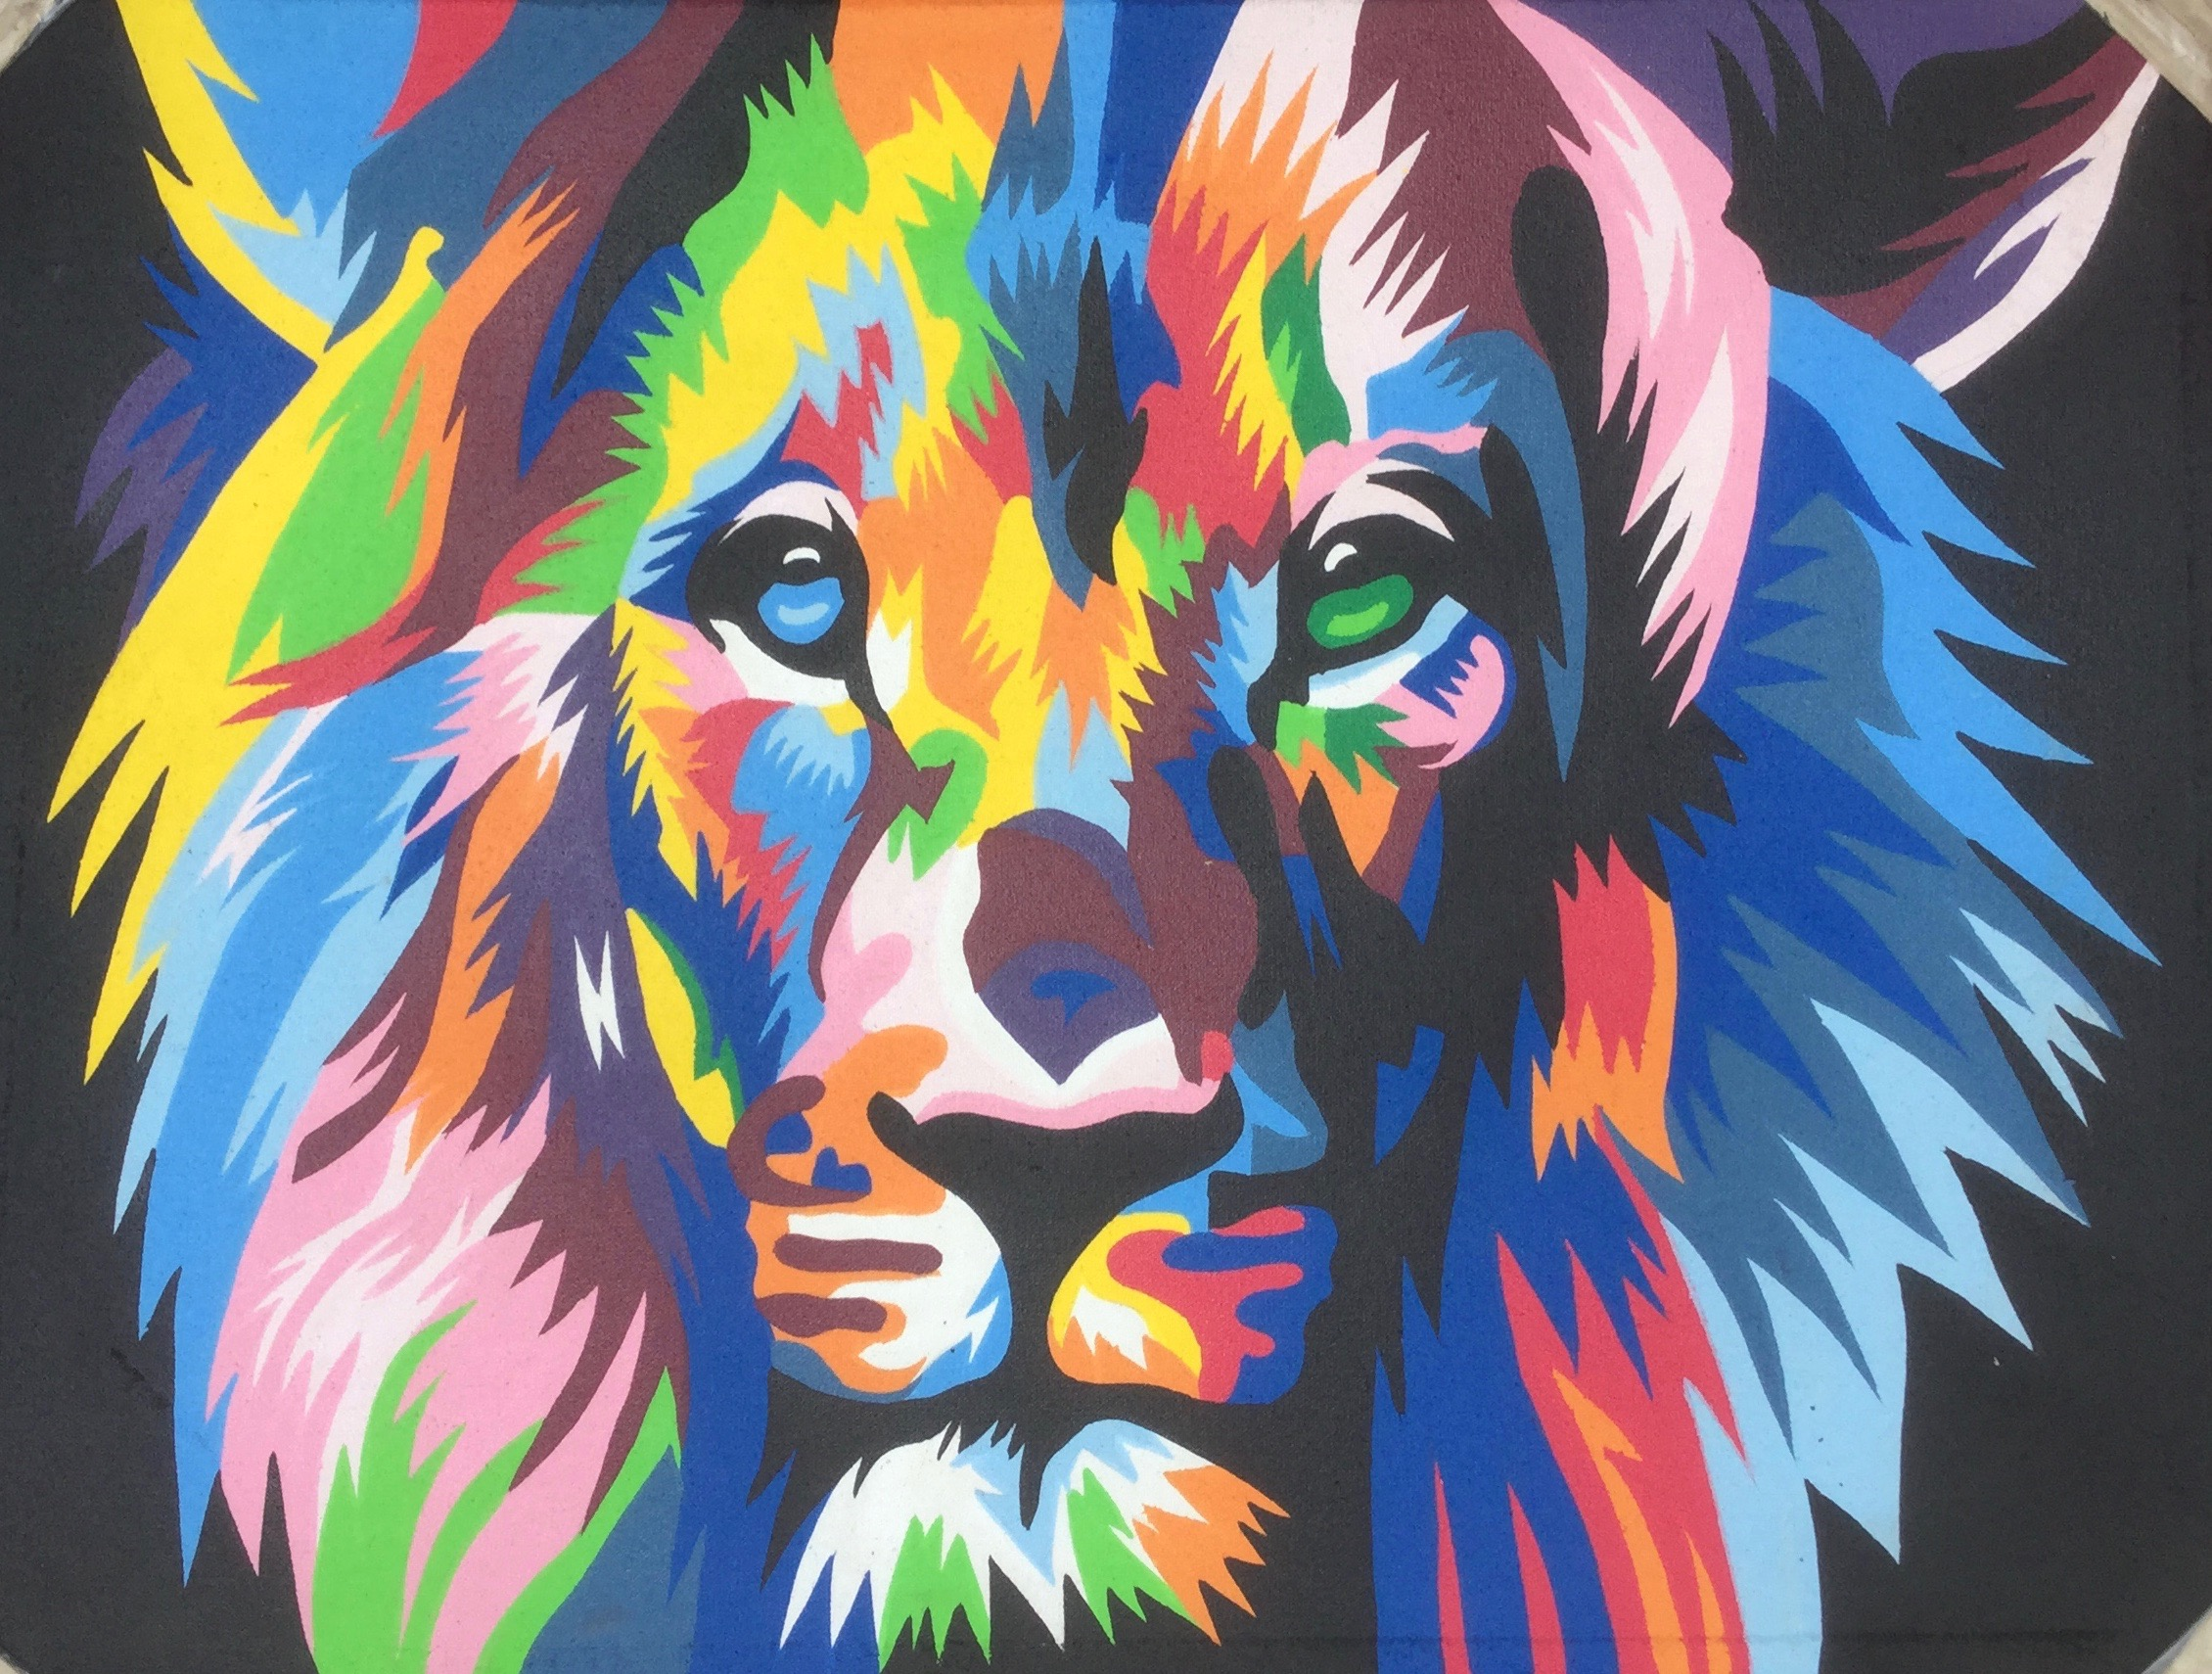 colorful animal painting 7090cap001 公式 goes windy dream